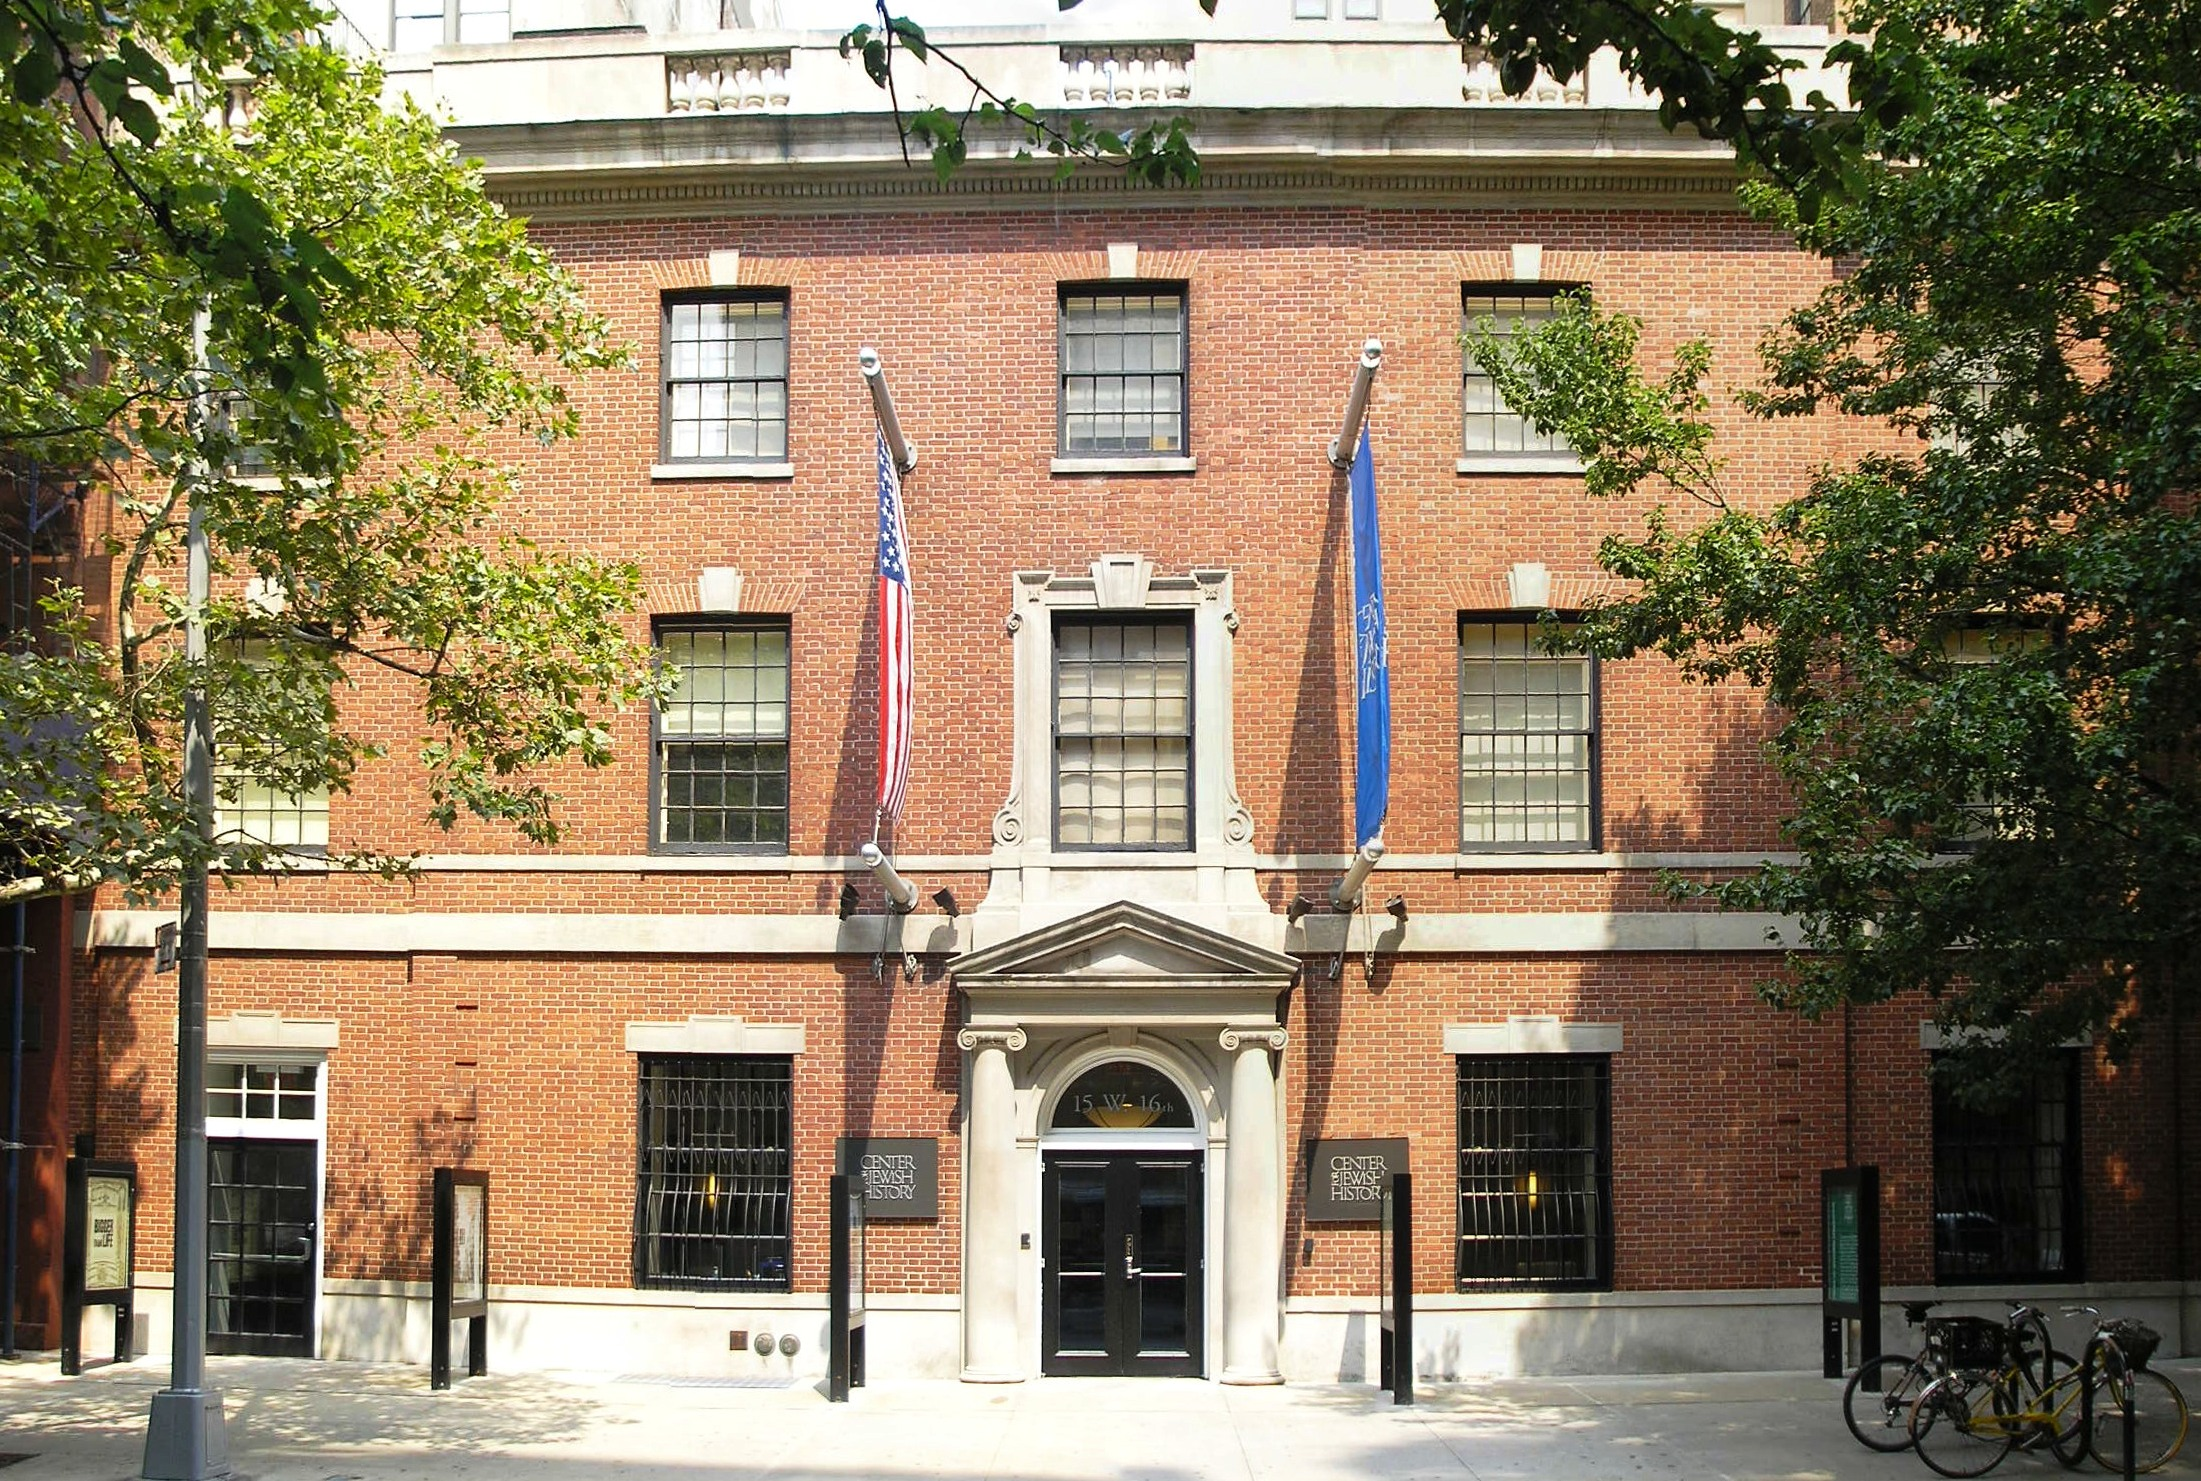 The Center for Jewish History on 16th Street